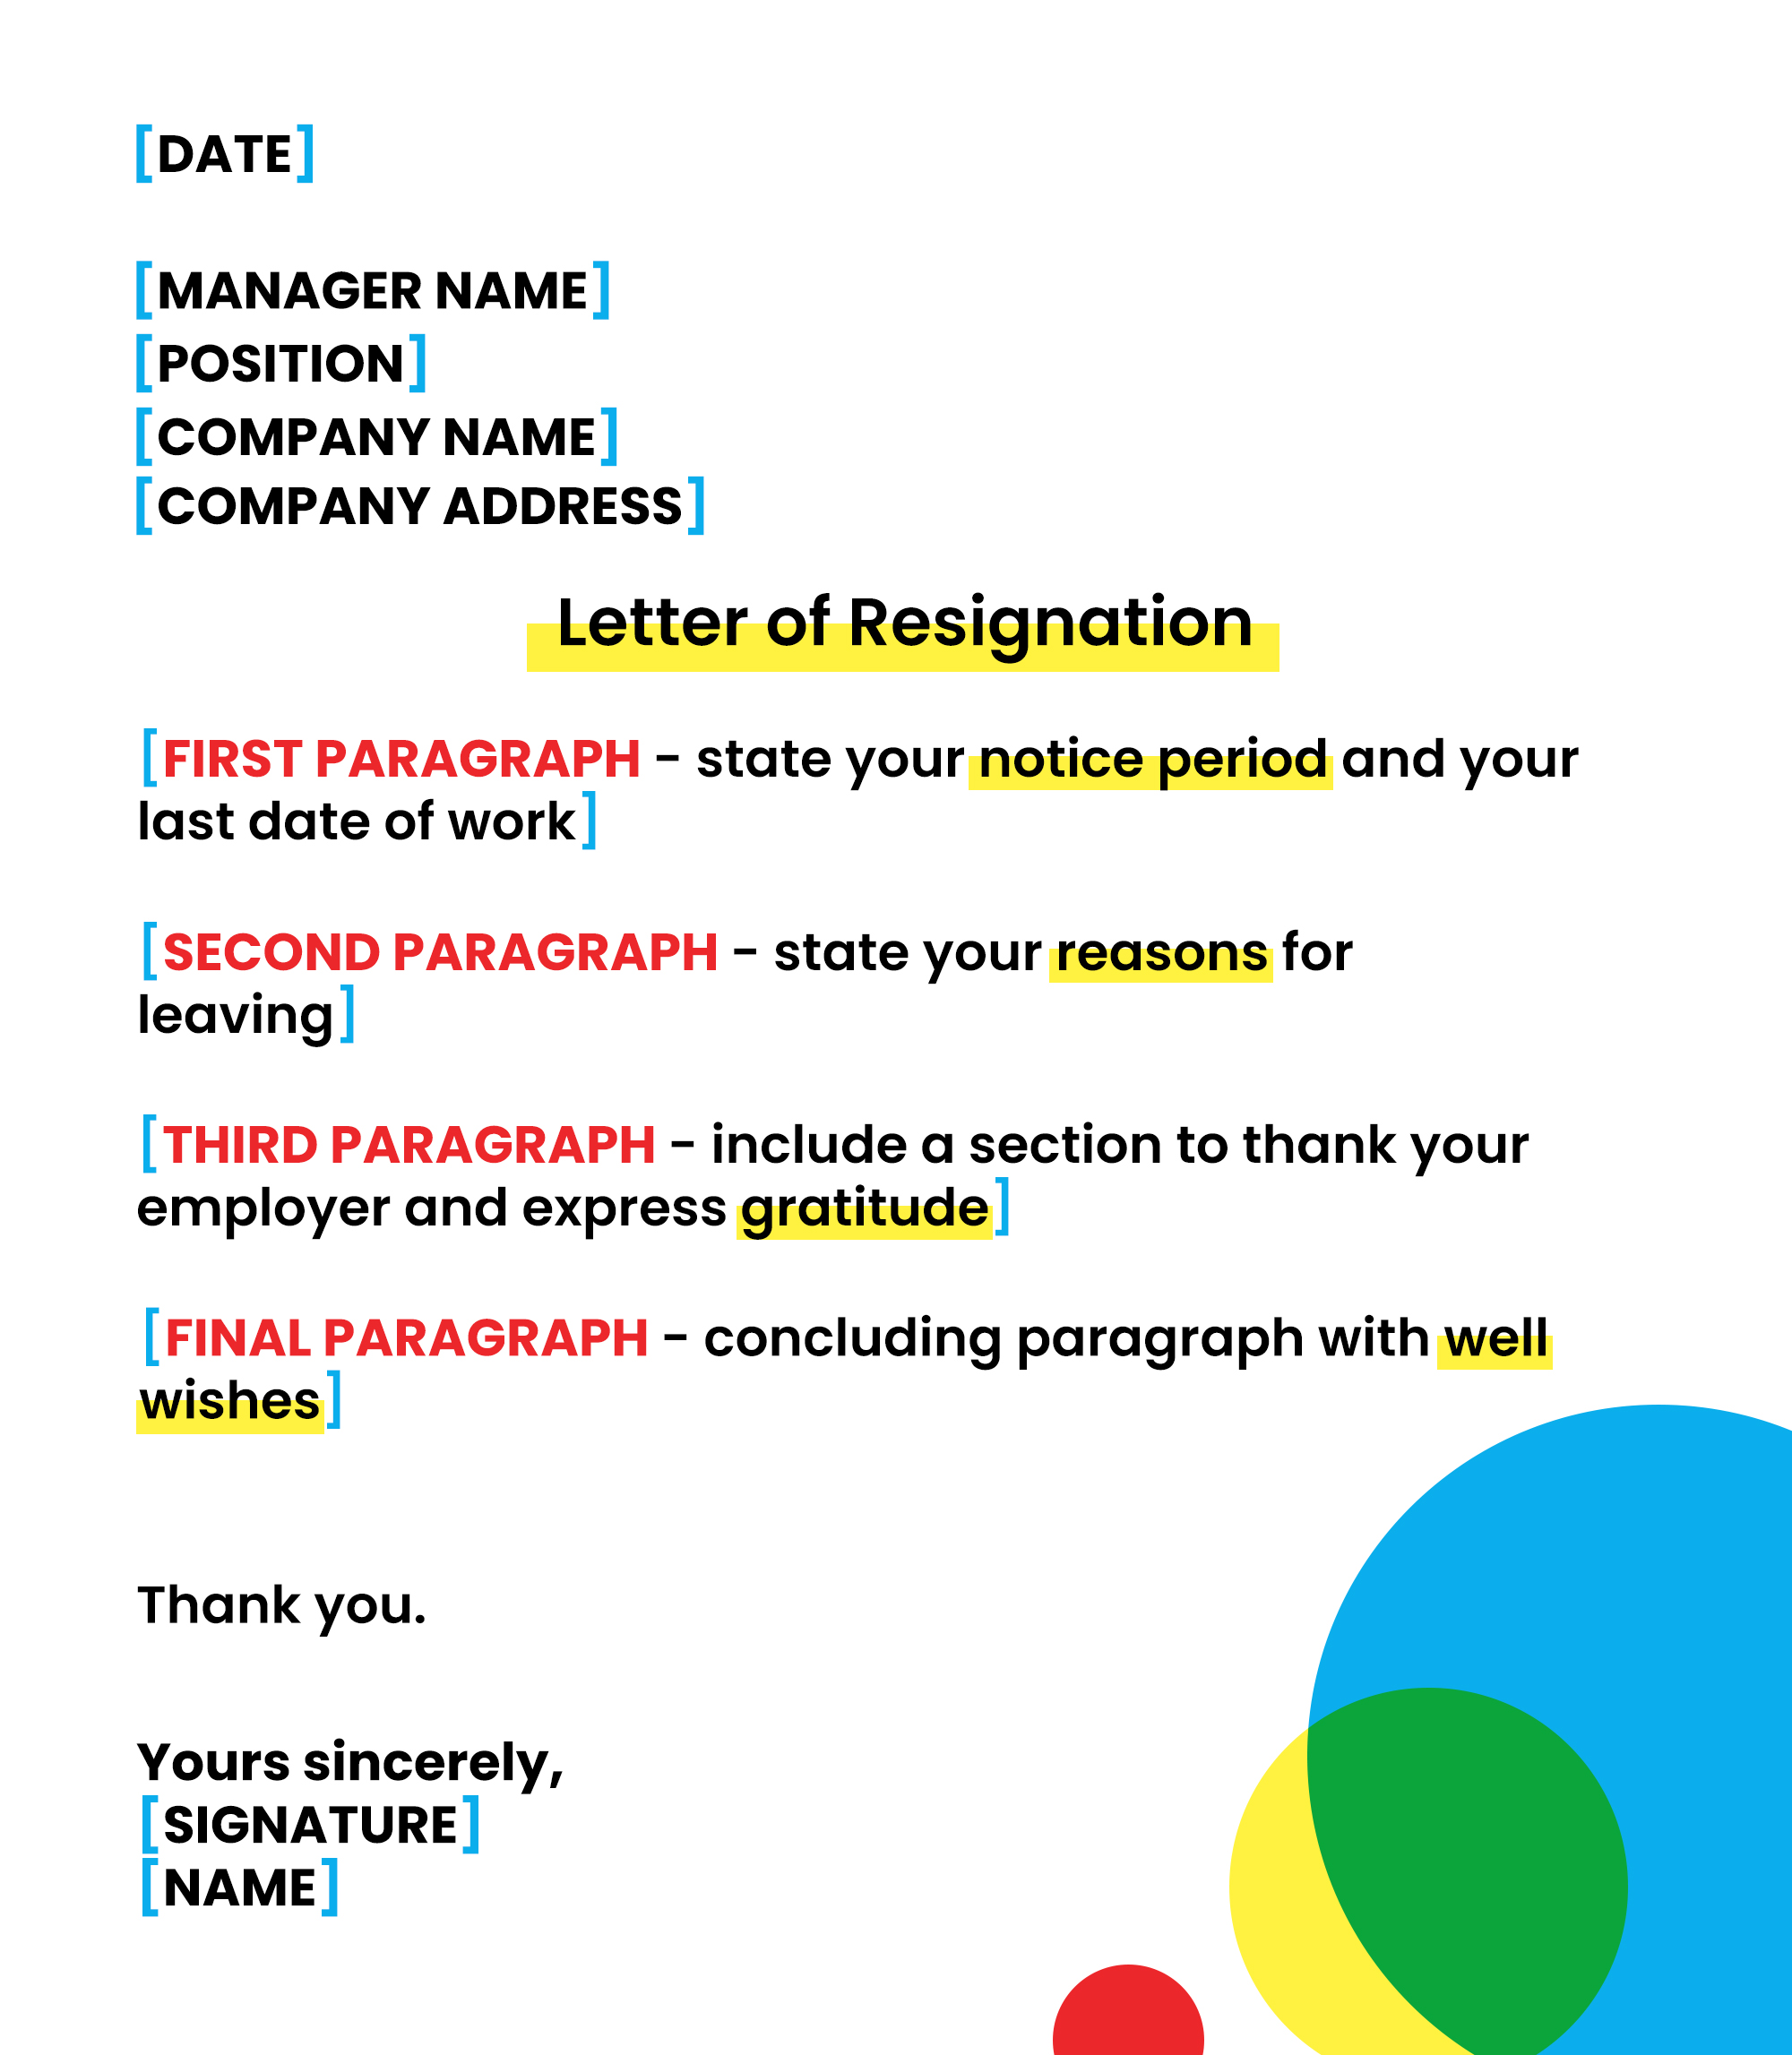 How to resign from your job professionally hired glints click here to download resignation letter templates for internships part time work and full time work expocarfo Gallery